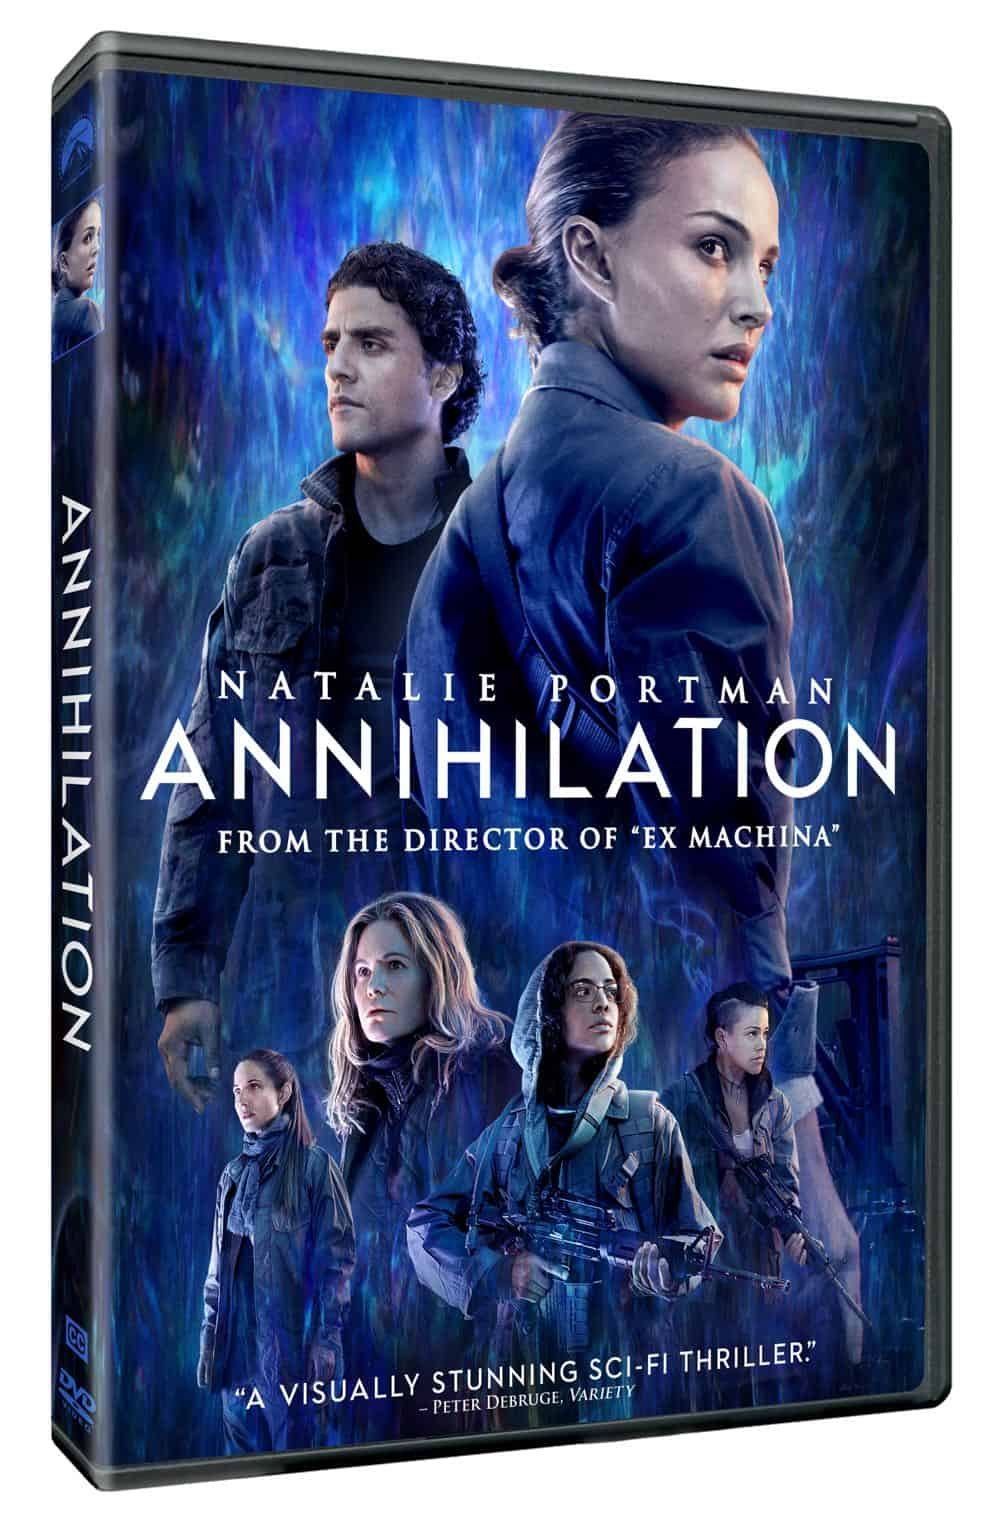 ANNIHILATION DVD Cover